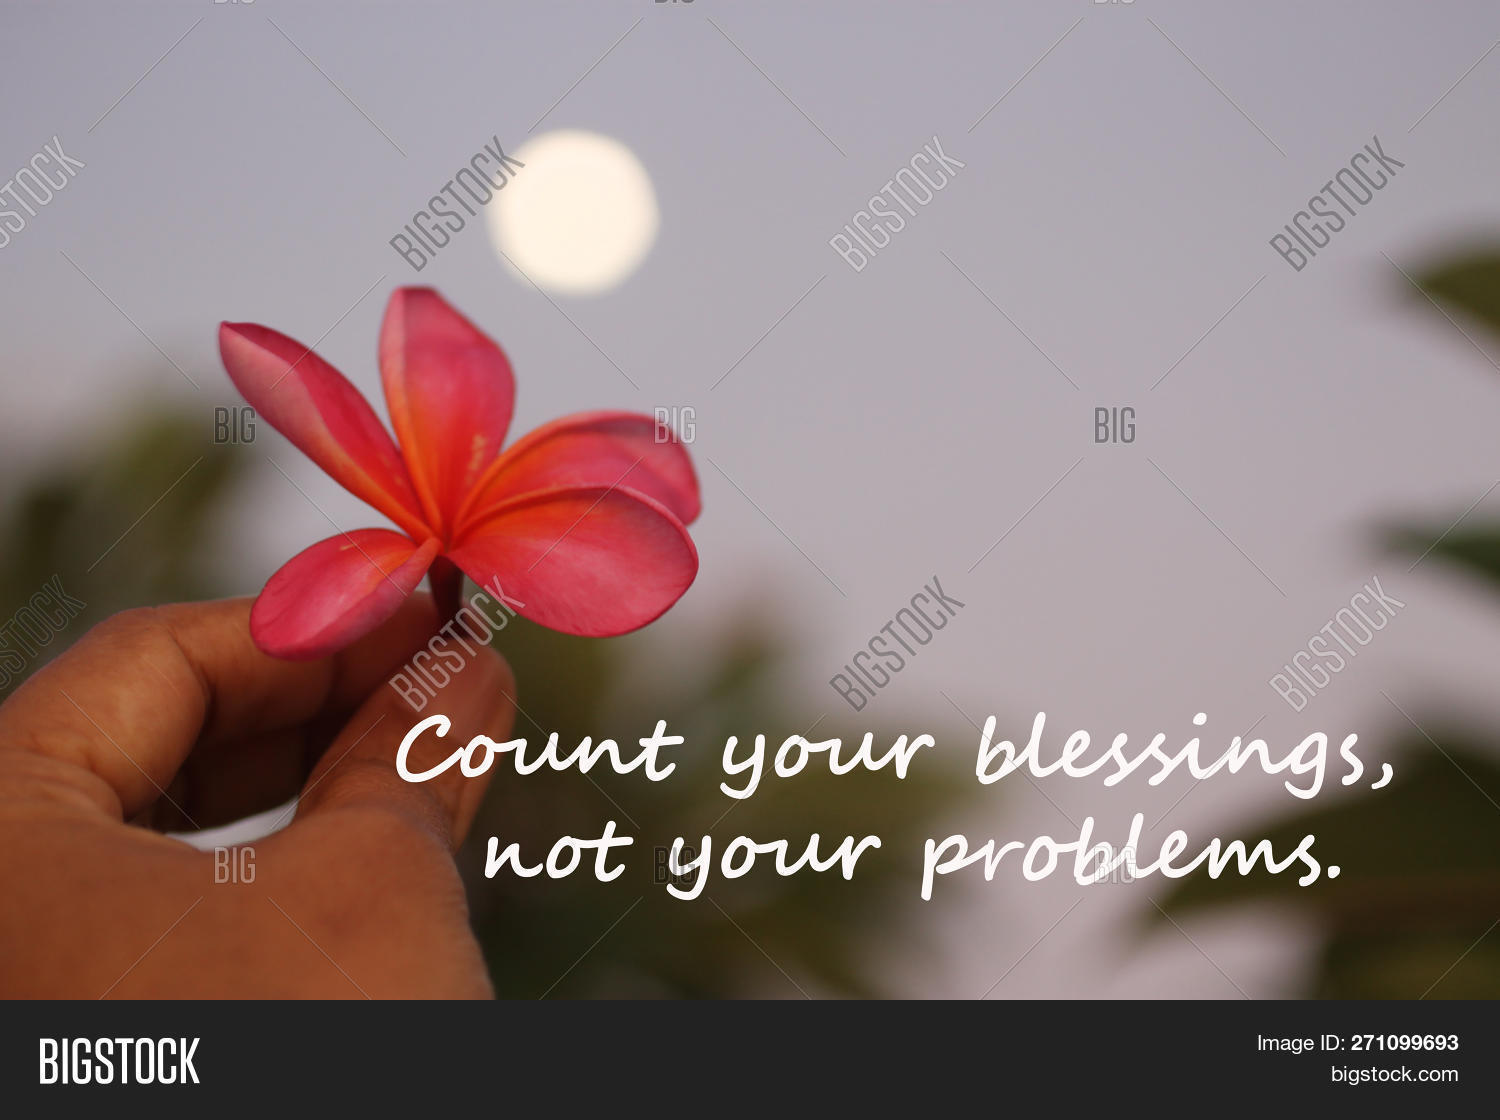 inspirational image photo trial bigstock